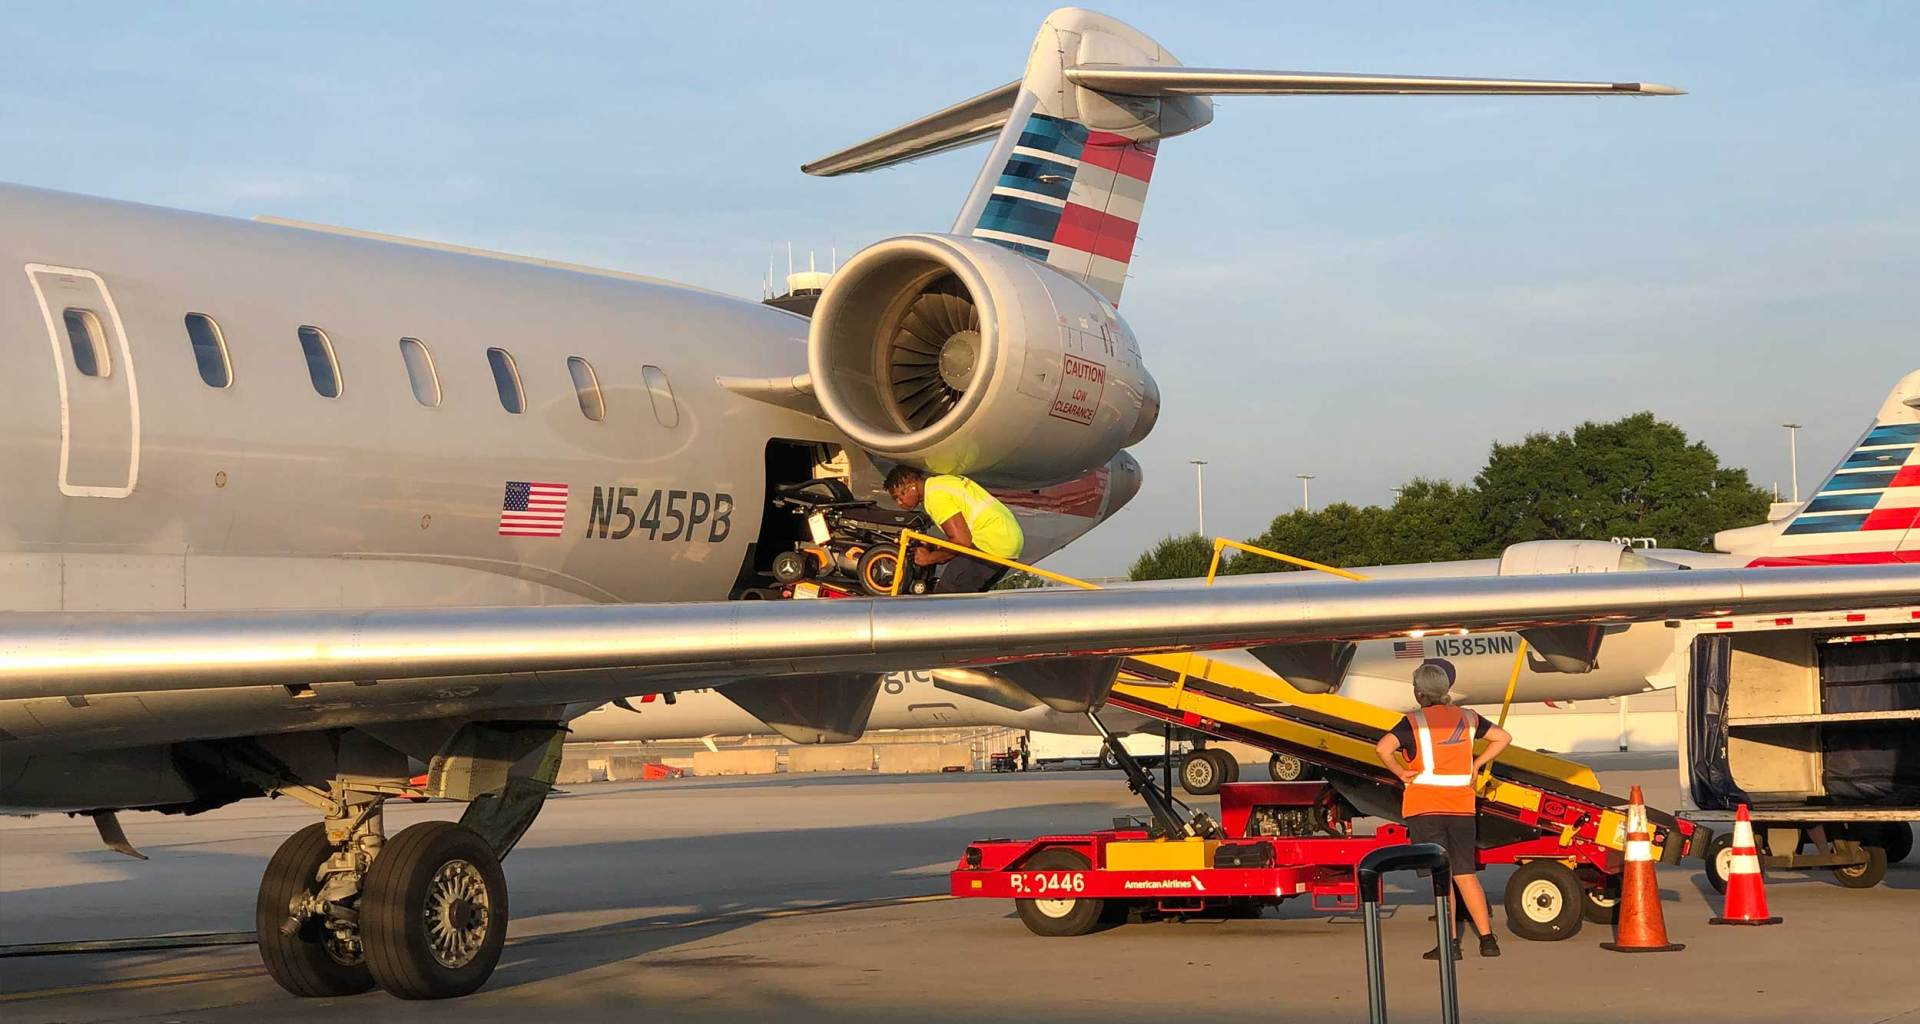 Power wheelchair loaded onto American Airlines CRJ-700 airplane.